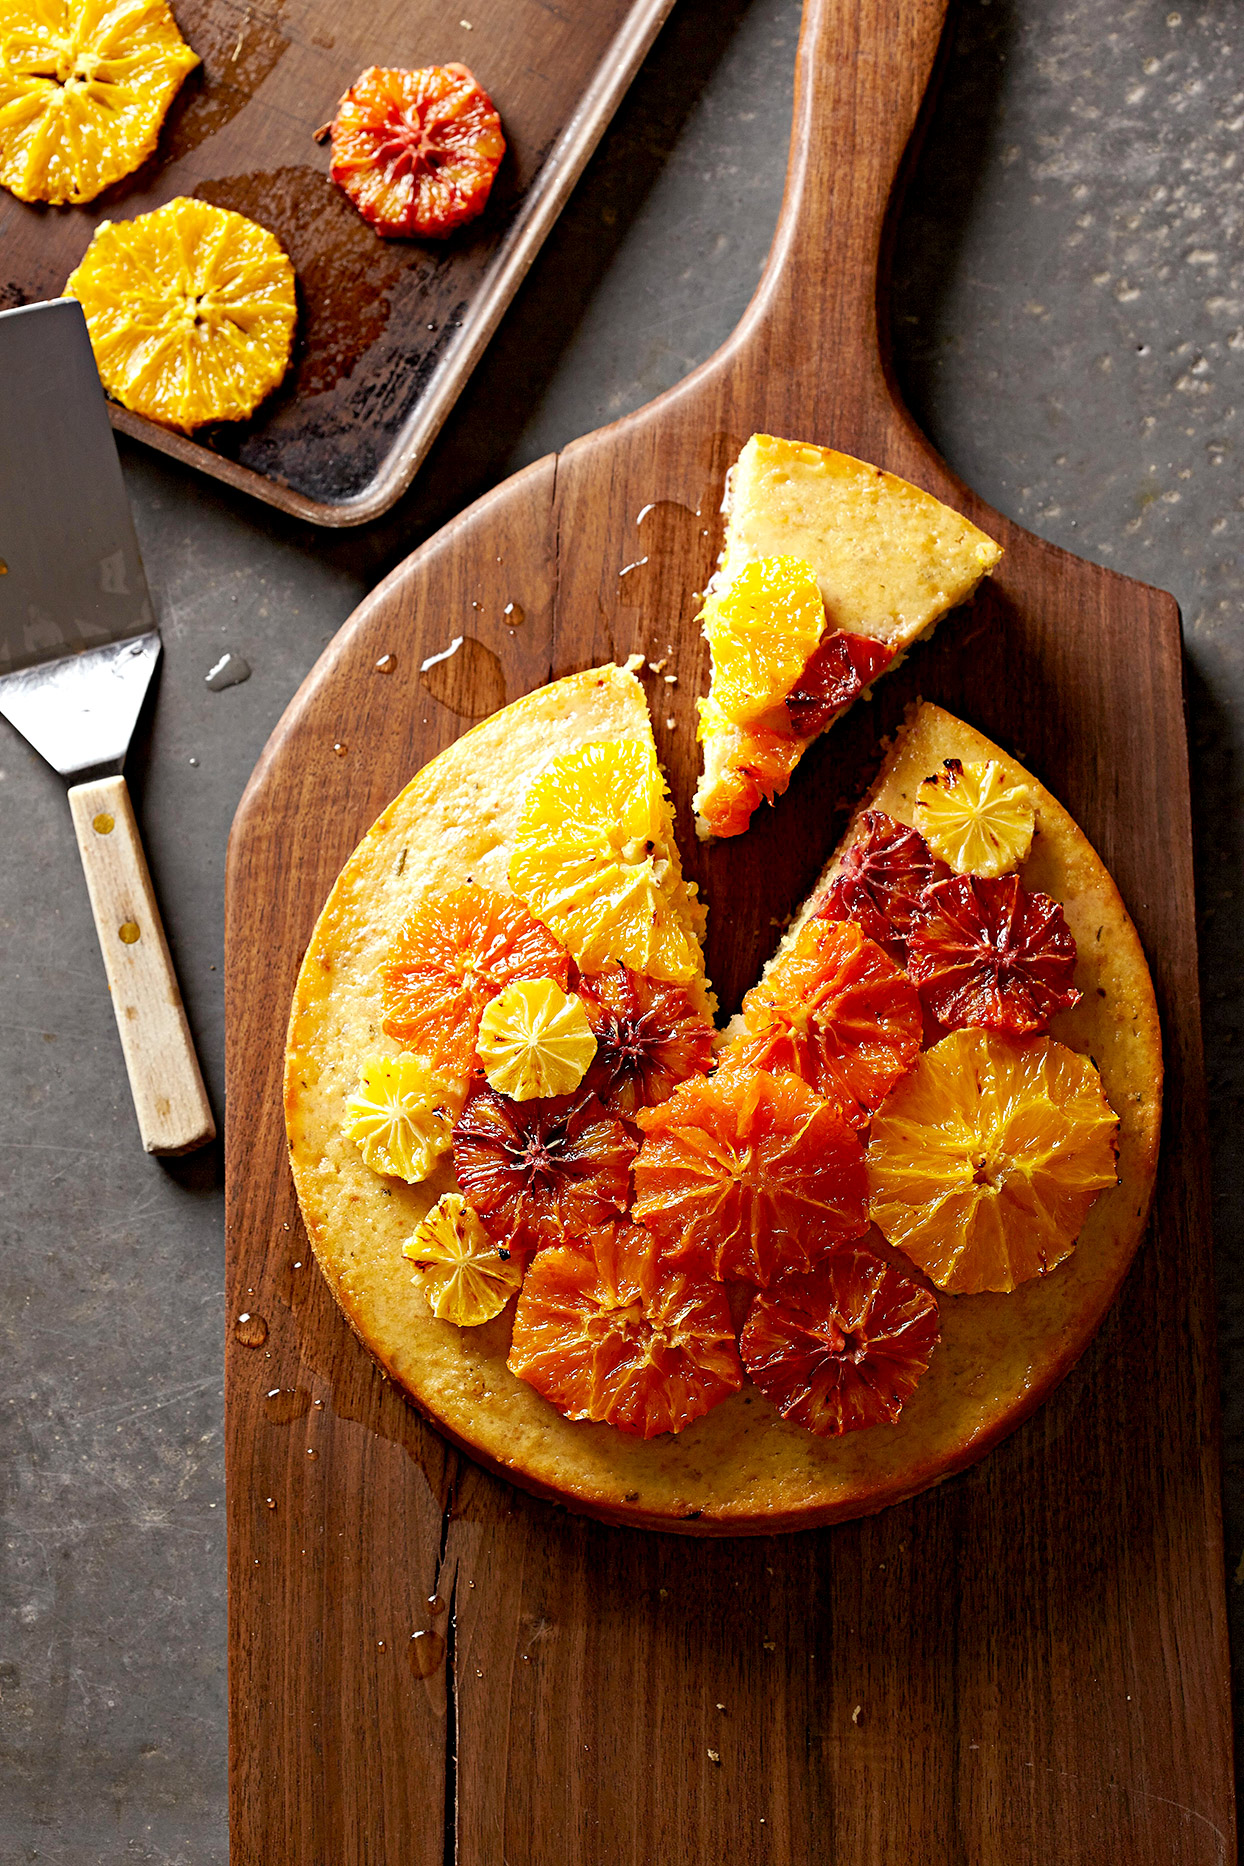 Olive Oil Cake with Roasted Citrus